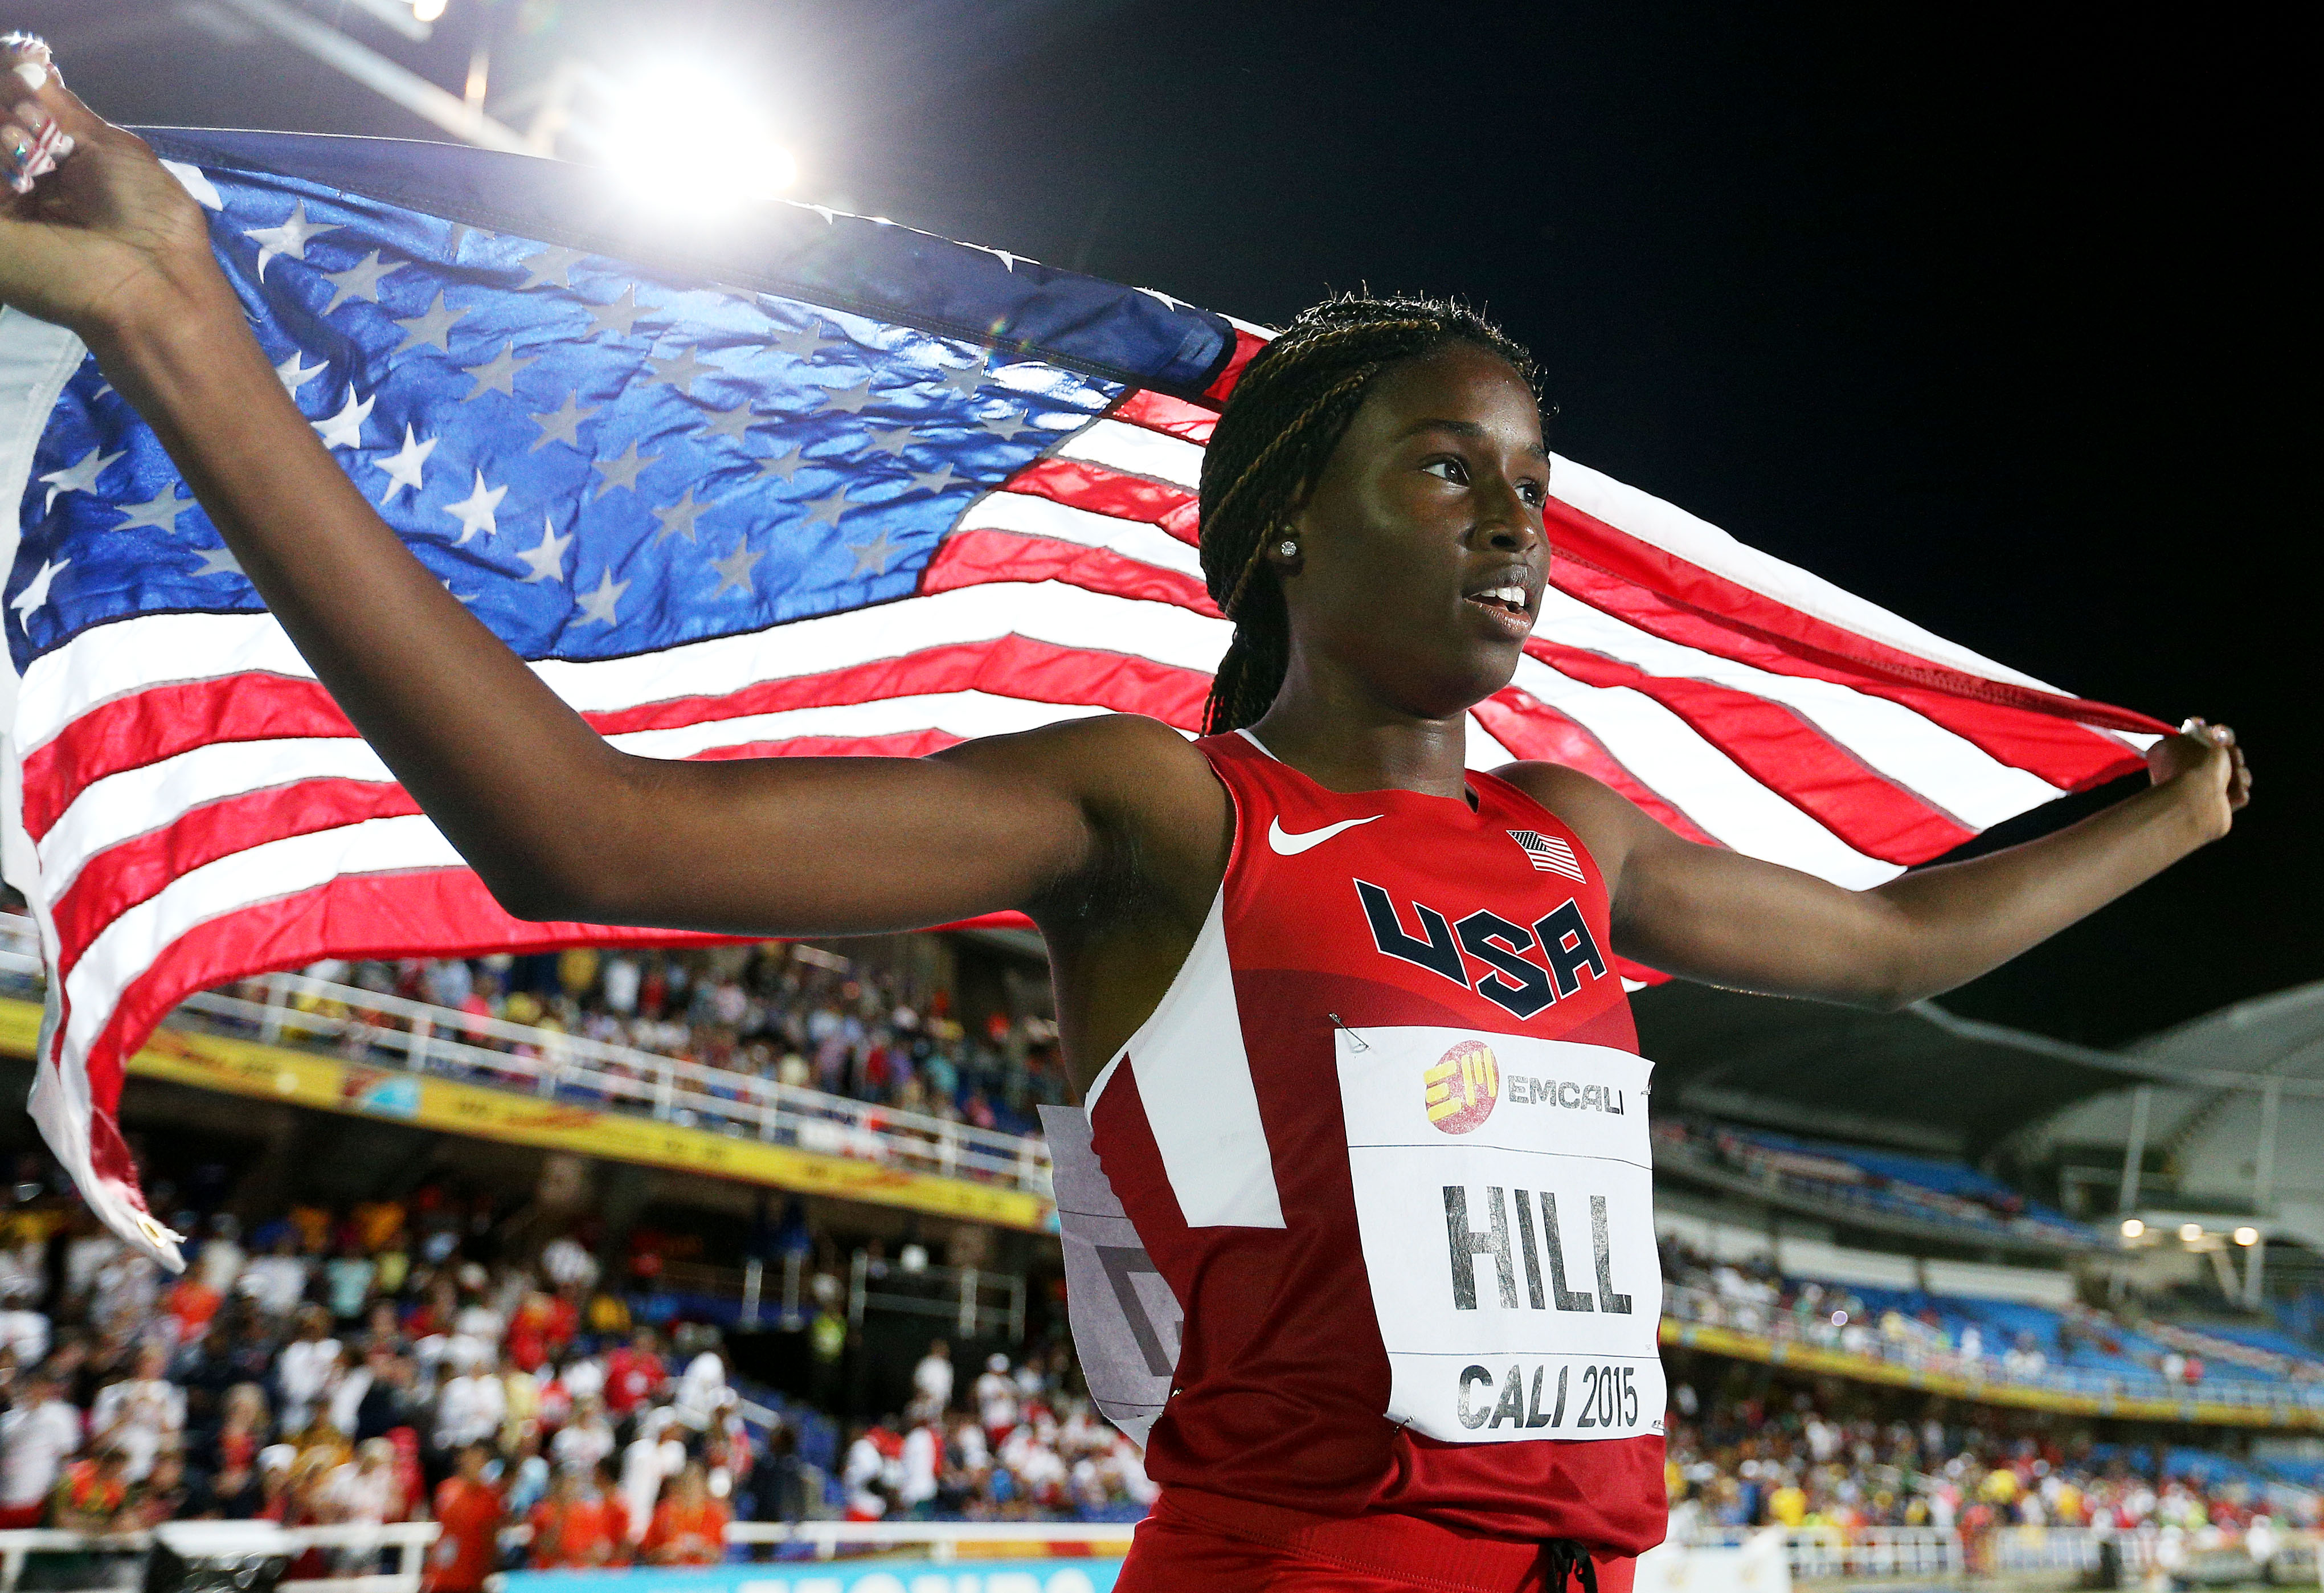 Candace Hill after winning the Girls 100 meters final at the IAAF World Youth Championships Photo: Patrick Smith, Getty Images